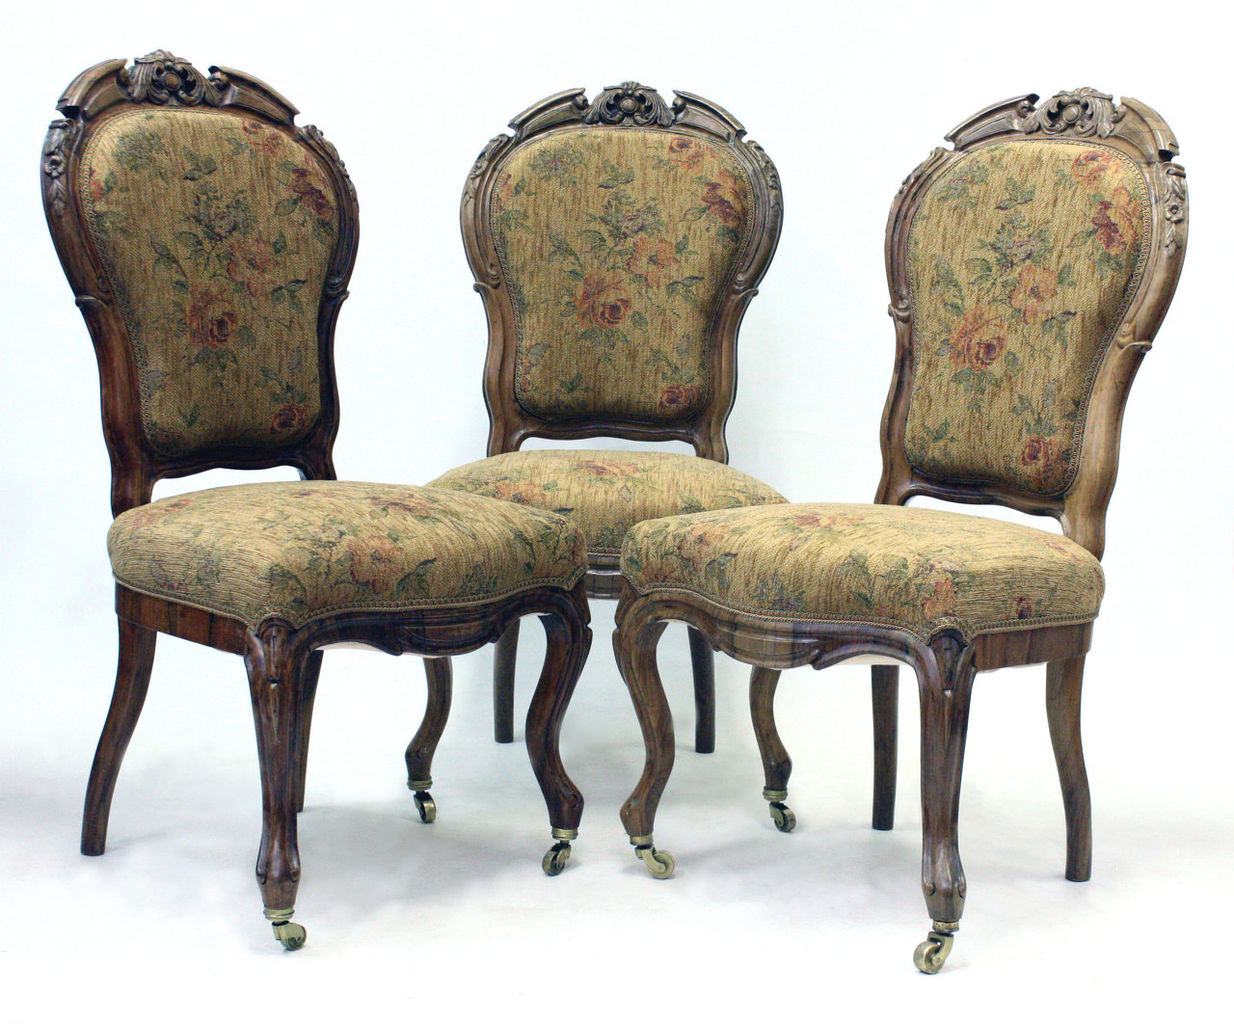 Neo Baroque Chairs